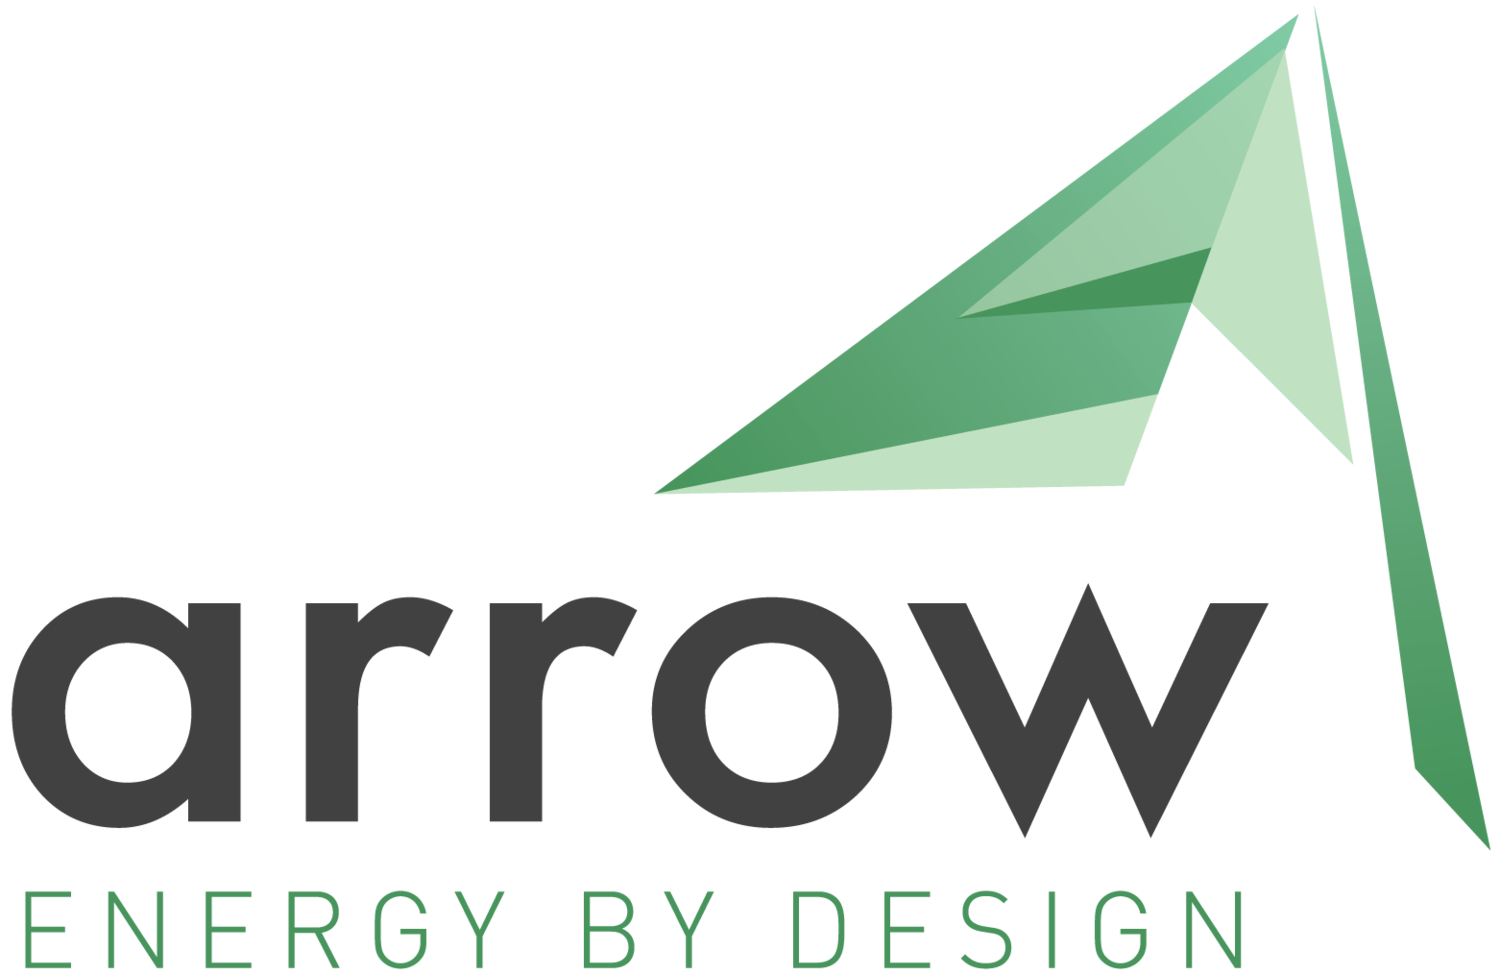 arrow - energy by design